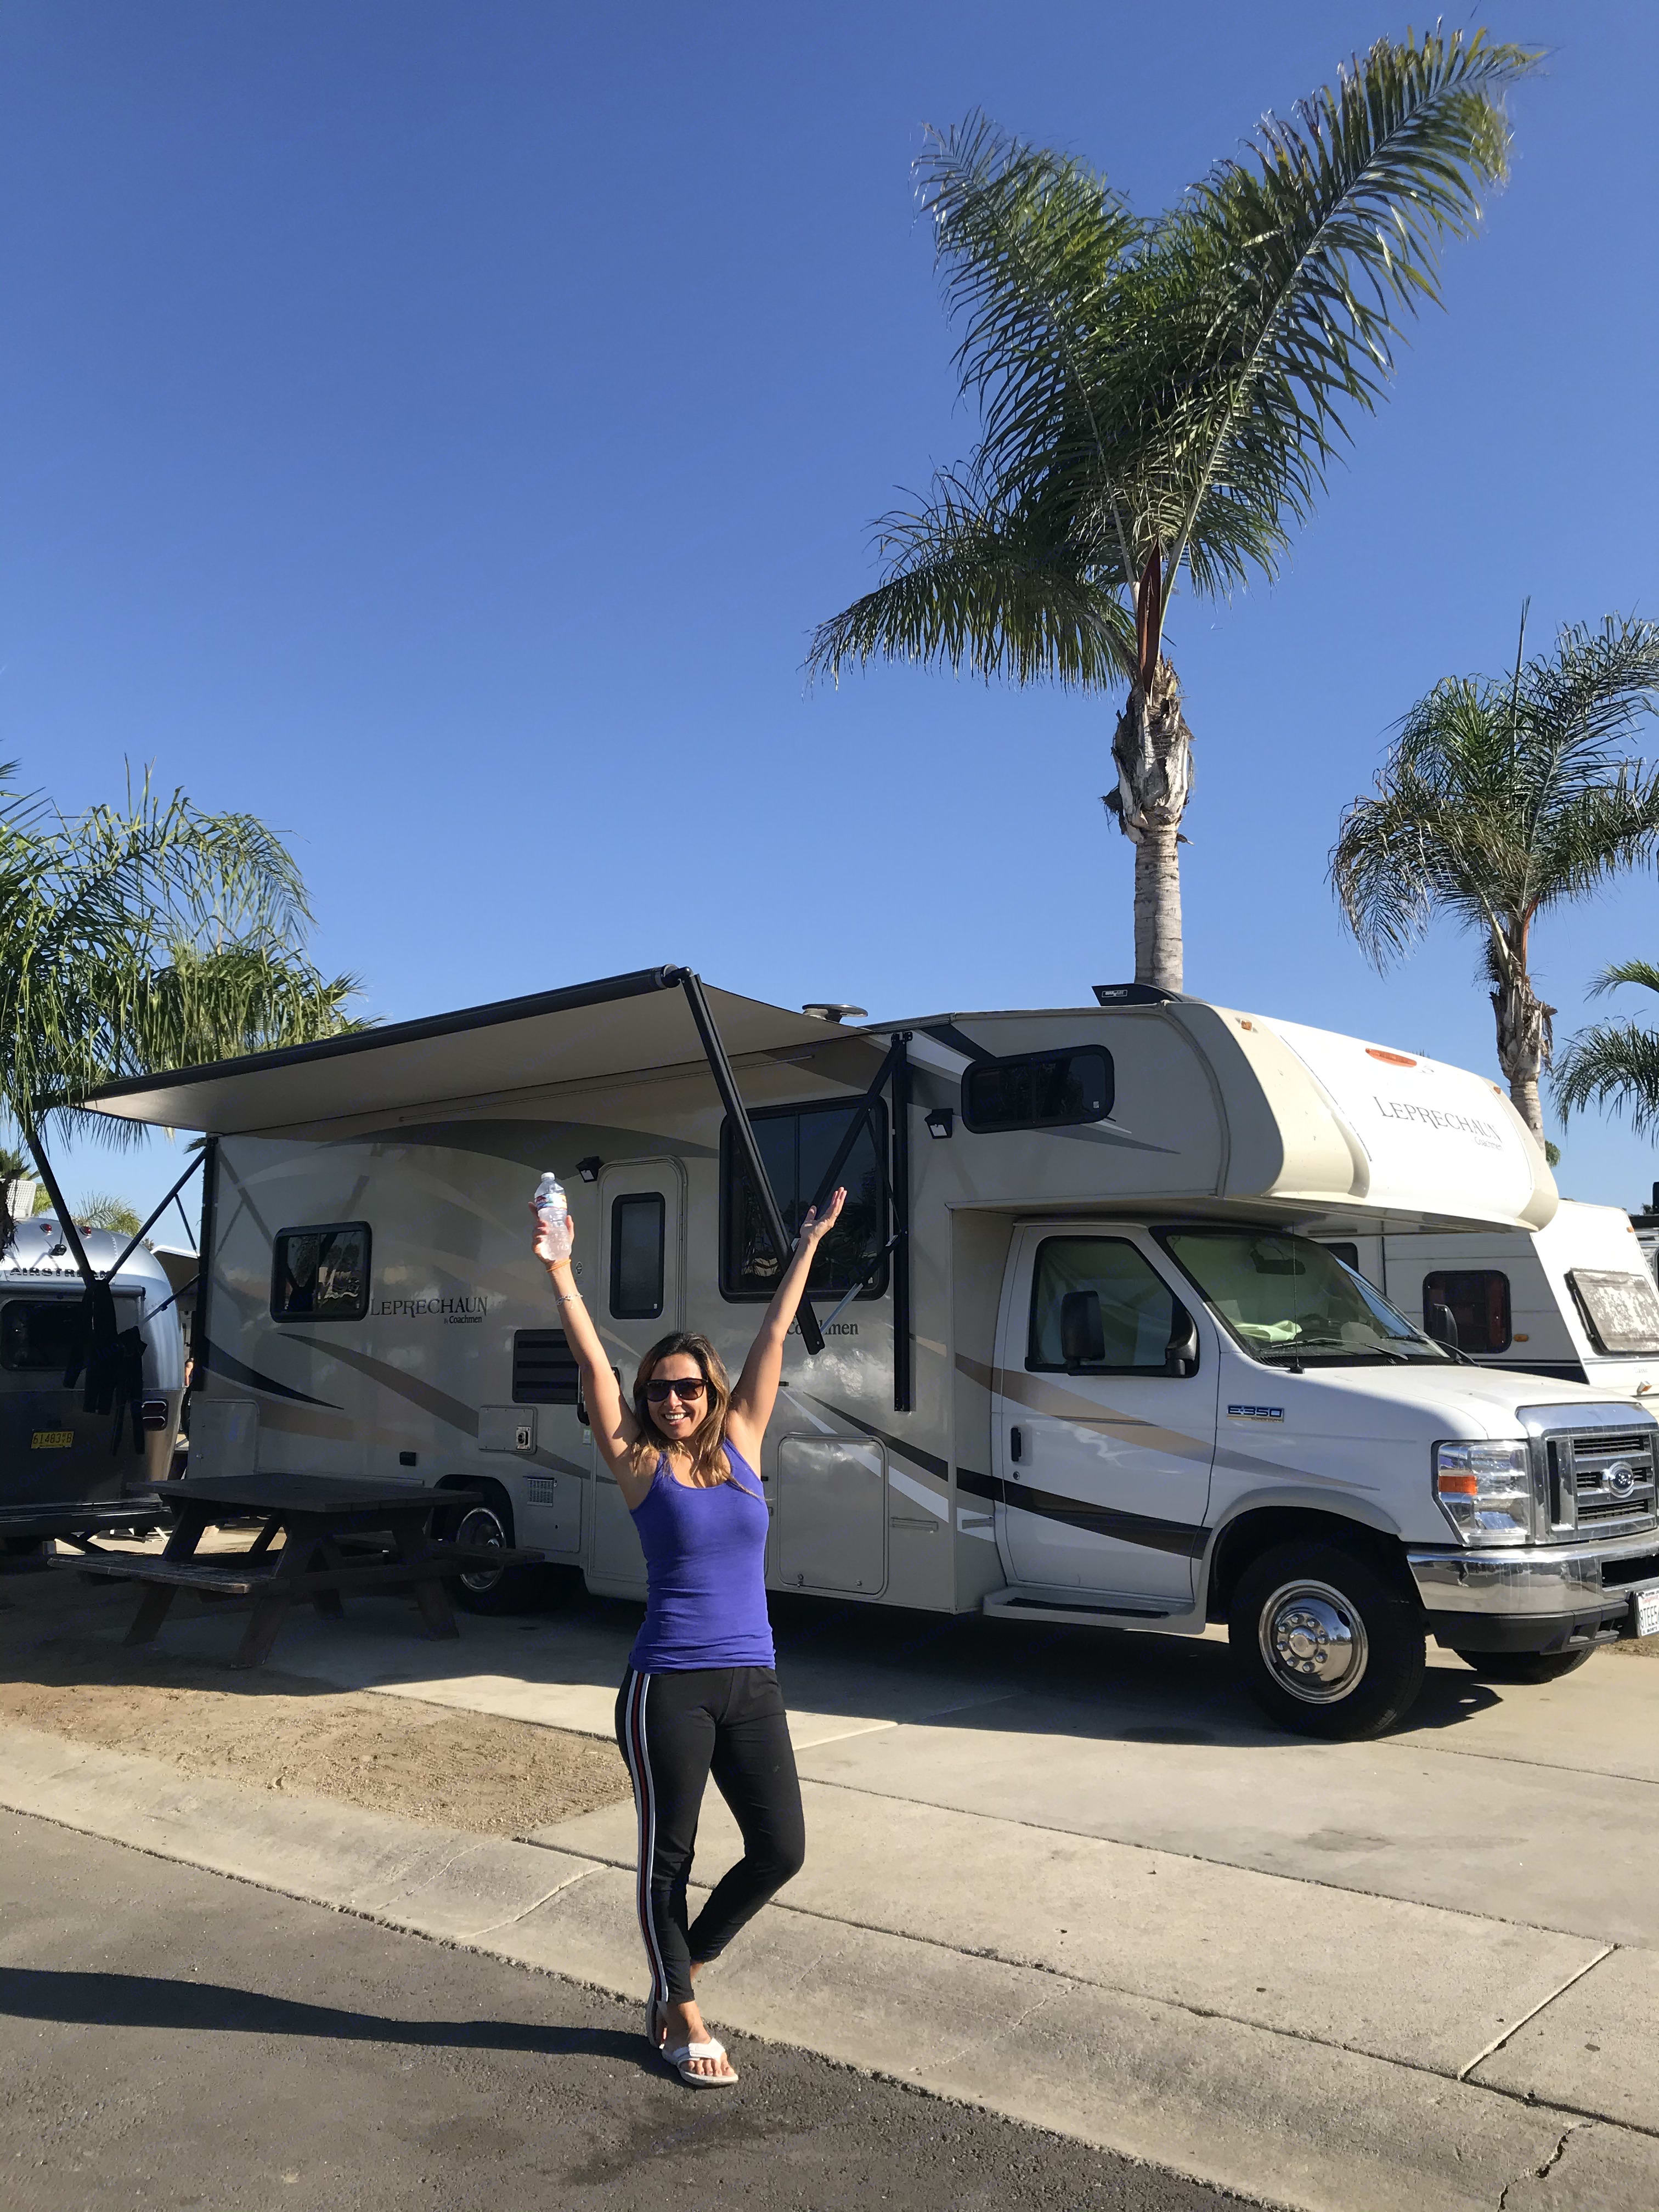 My kids inside doing school, Me?? happy after my work-out on the beach!. Ford Coachman 2019